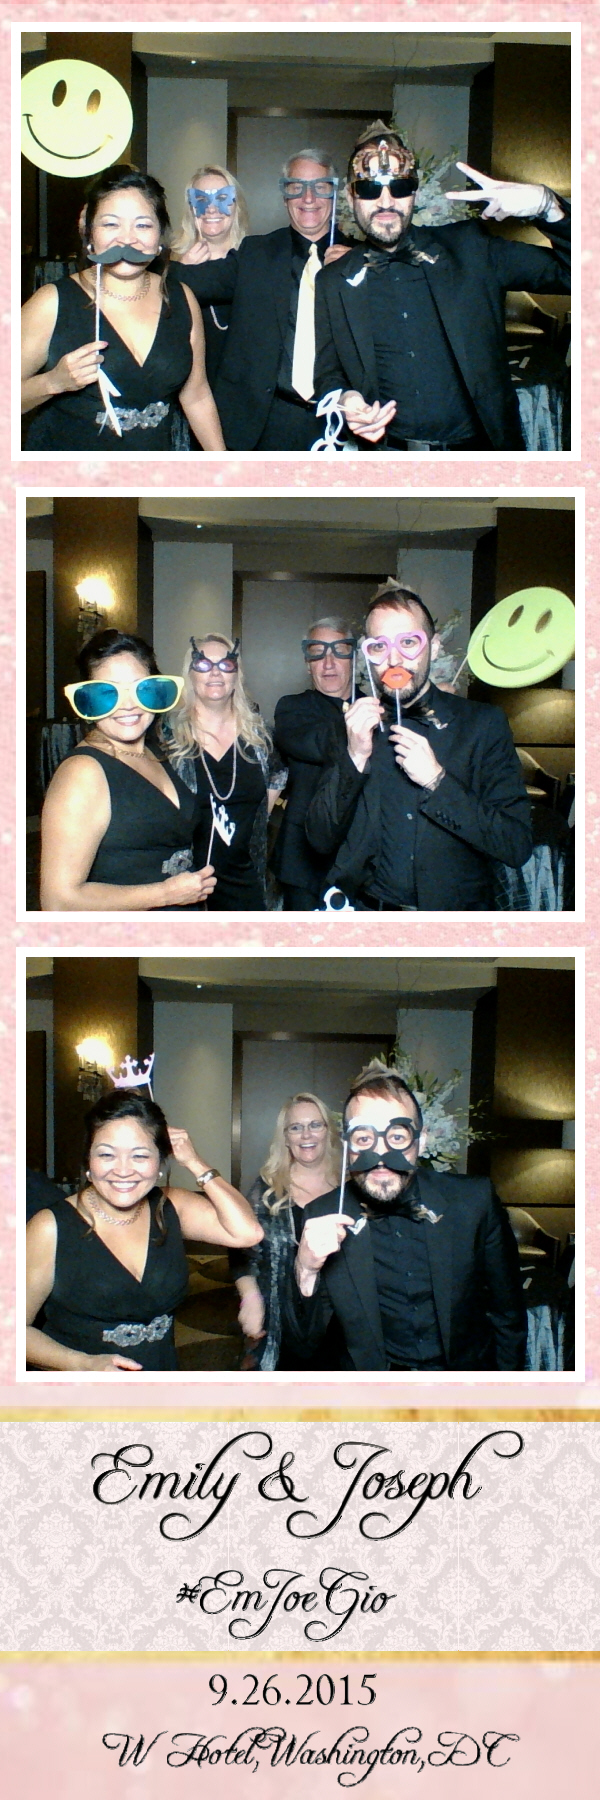 Guest House Events Photo Booth E&J (38).jpg